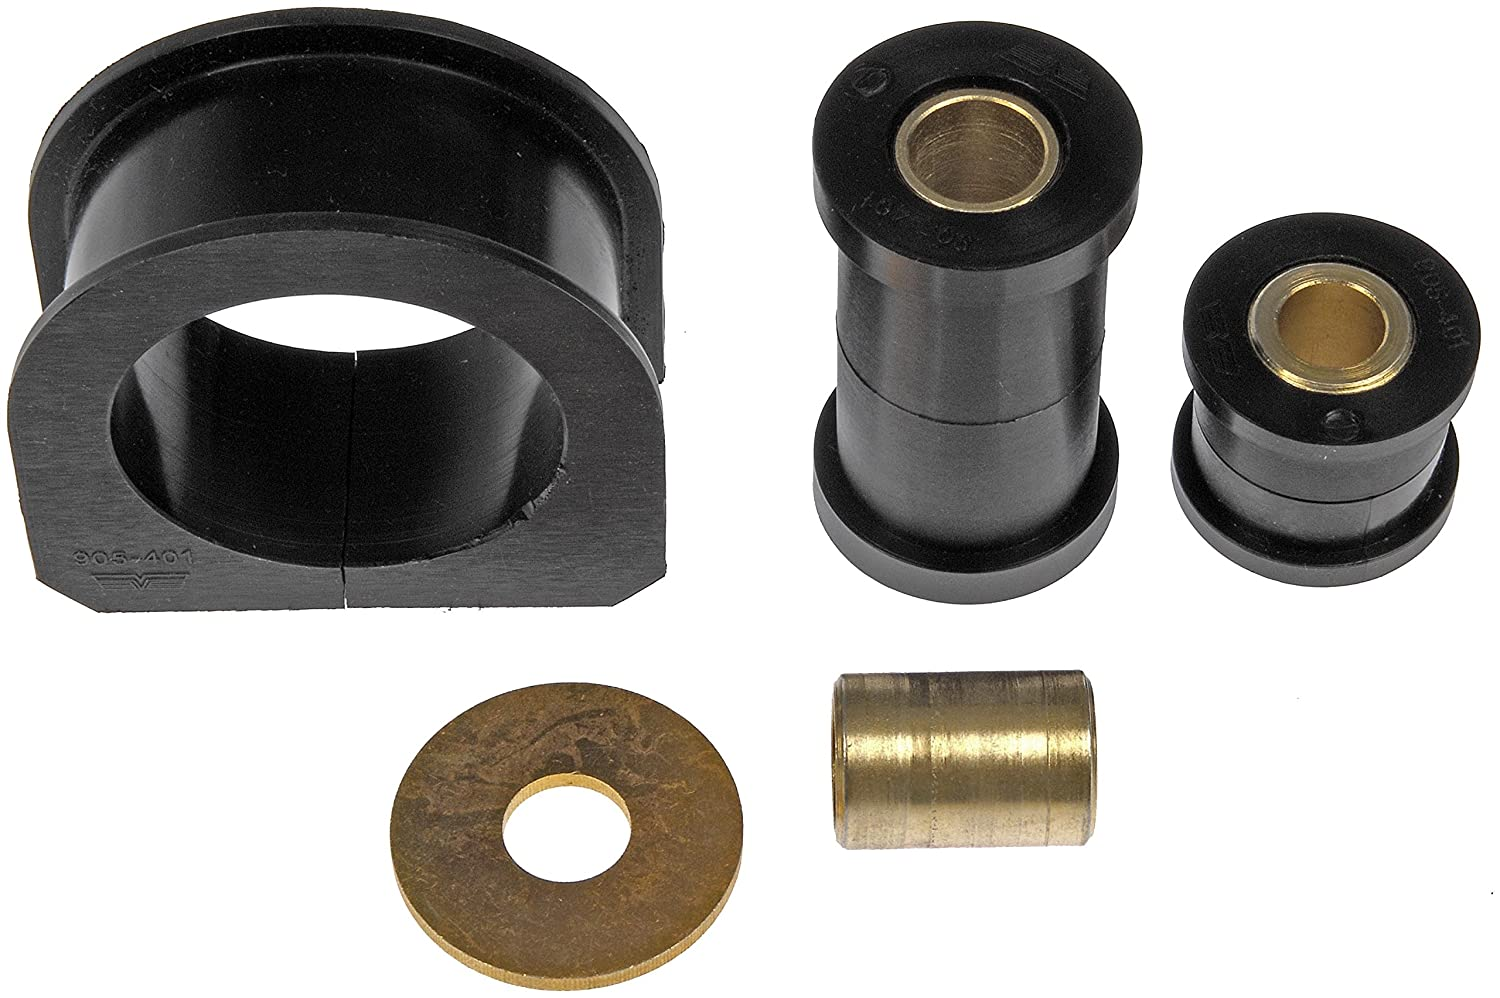 Dorman 905-401 Power Steering Rack Mount Bushing for Toyota Trucks Dorman - OE Solutions